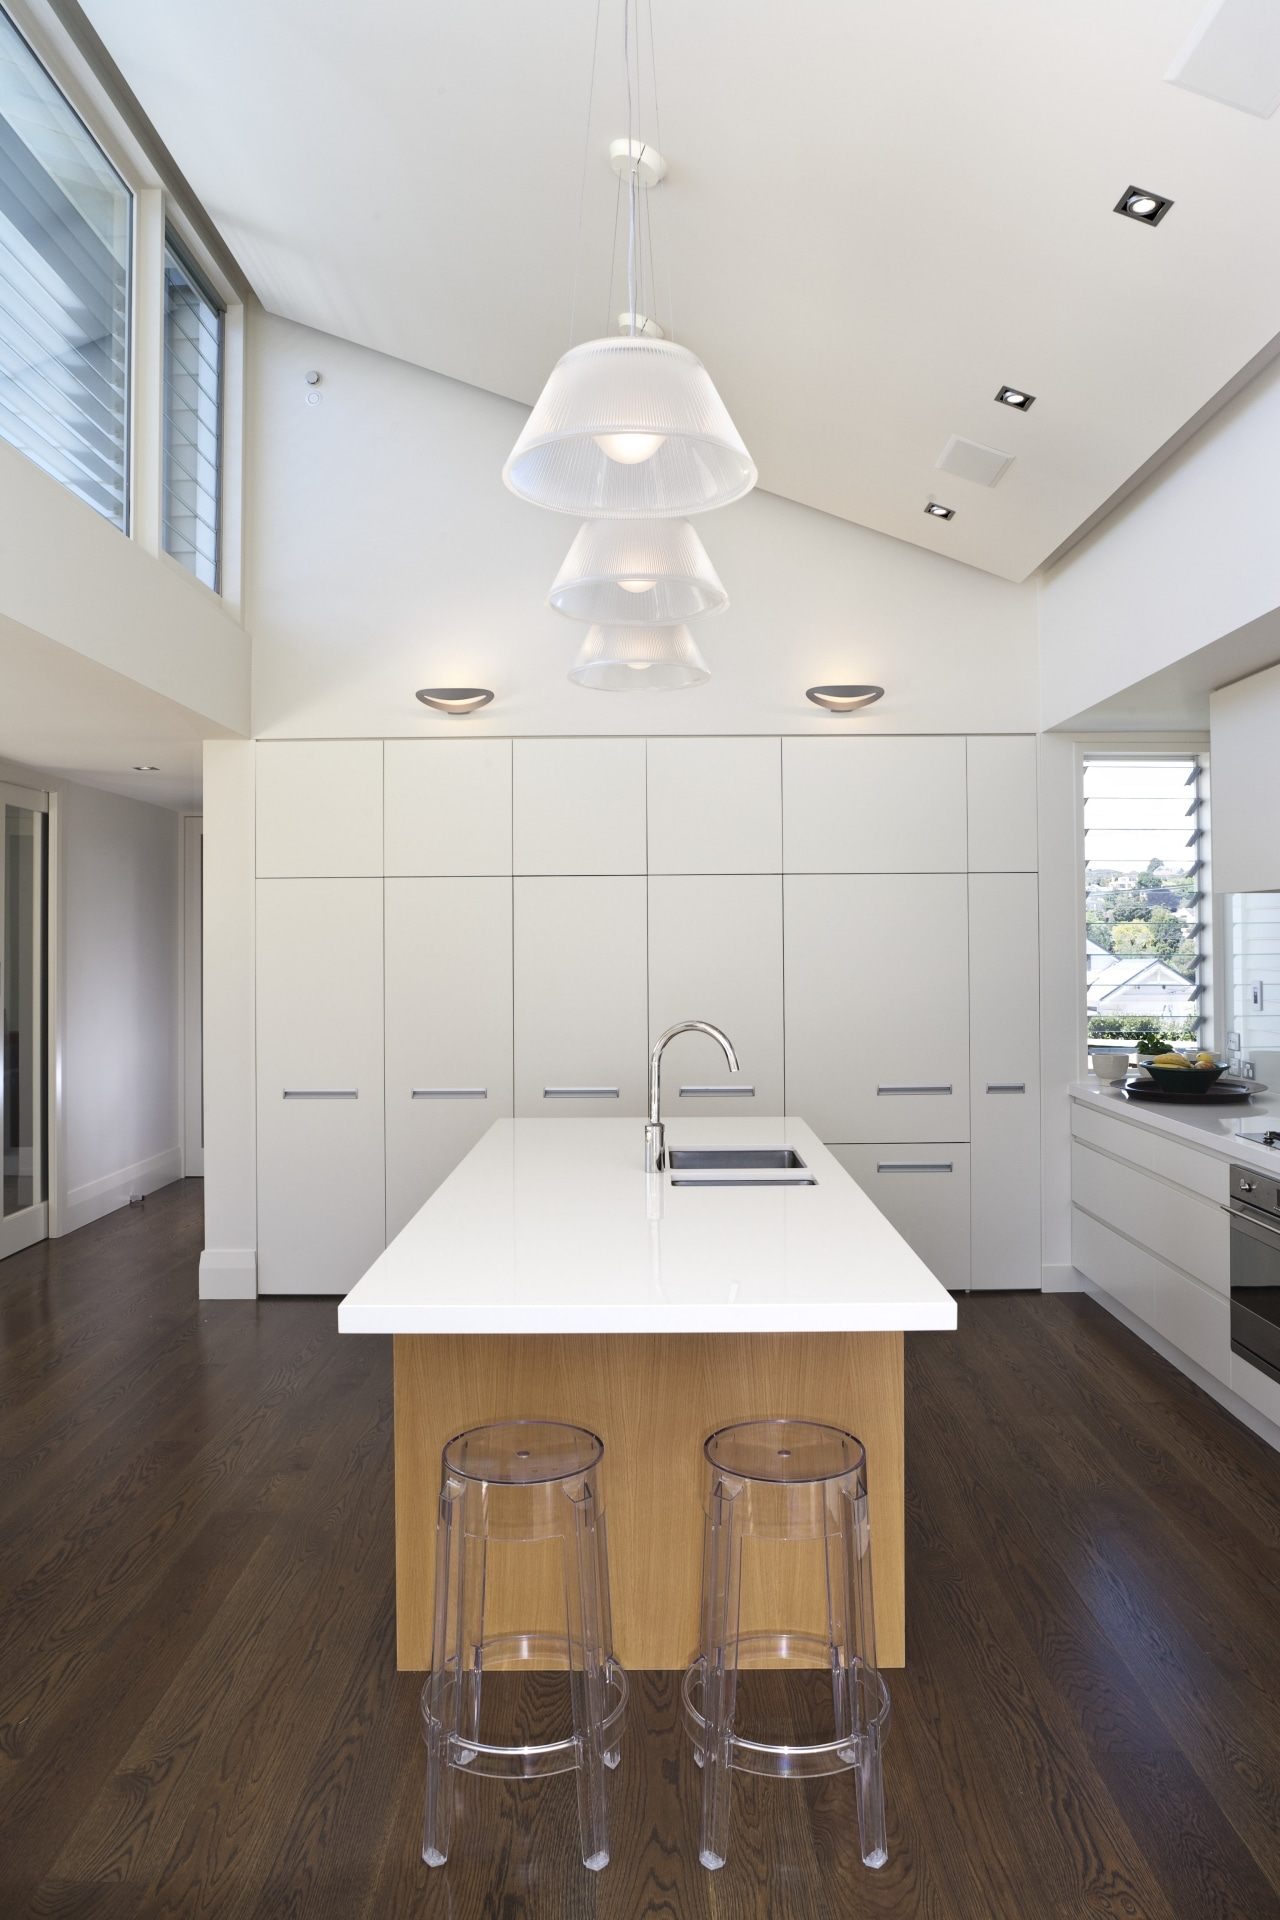 Sleek white lacquered cabinetry wraps the sides of ceiling, countertop, daylighting, floor, flooring, hardwood, home, house, interior design, kitchen, laminate flooring, real estate, room, table, wood flooring, white